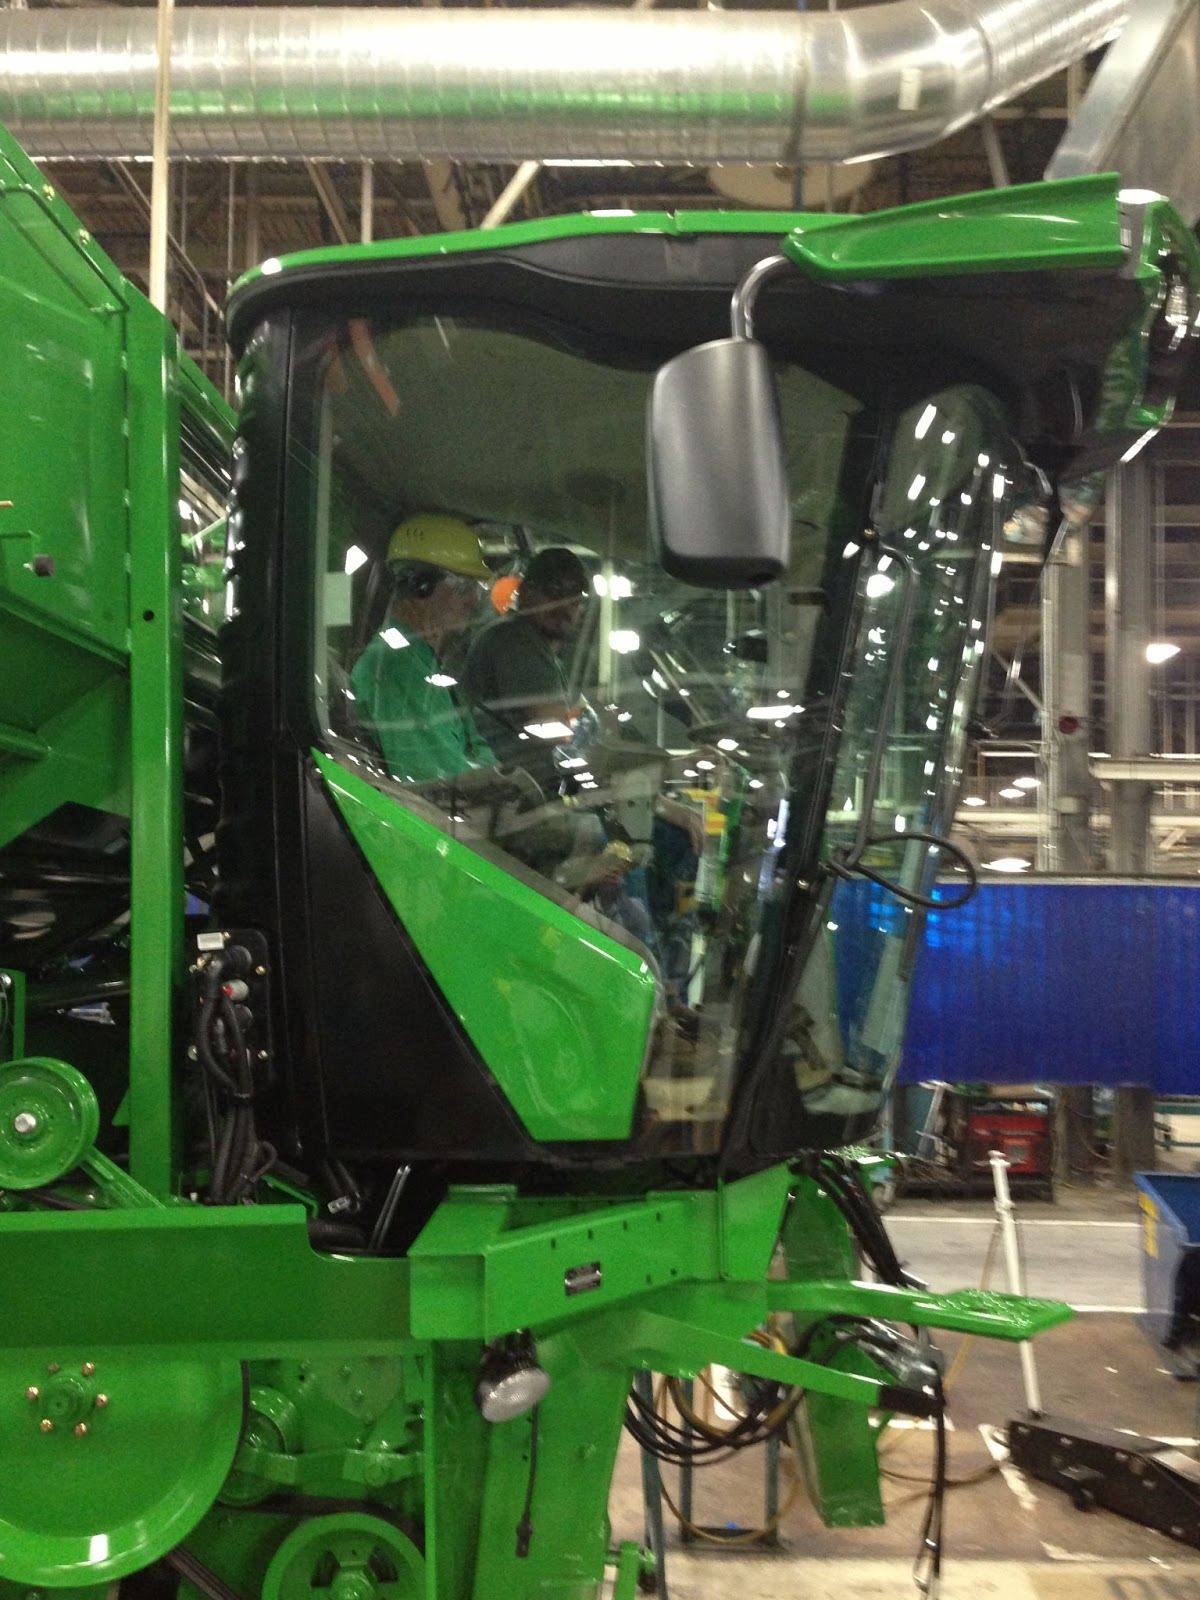 John Deere Assembly Line : Johnson family farms planting update